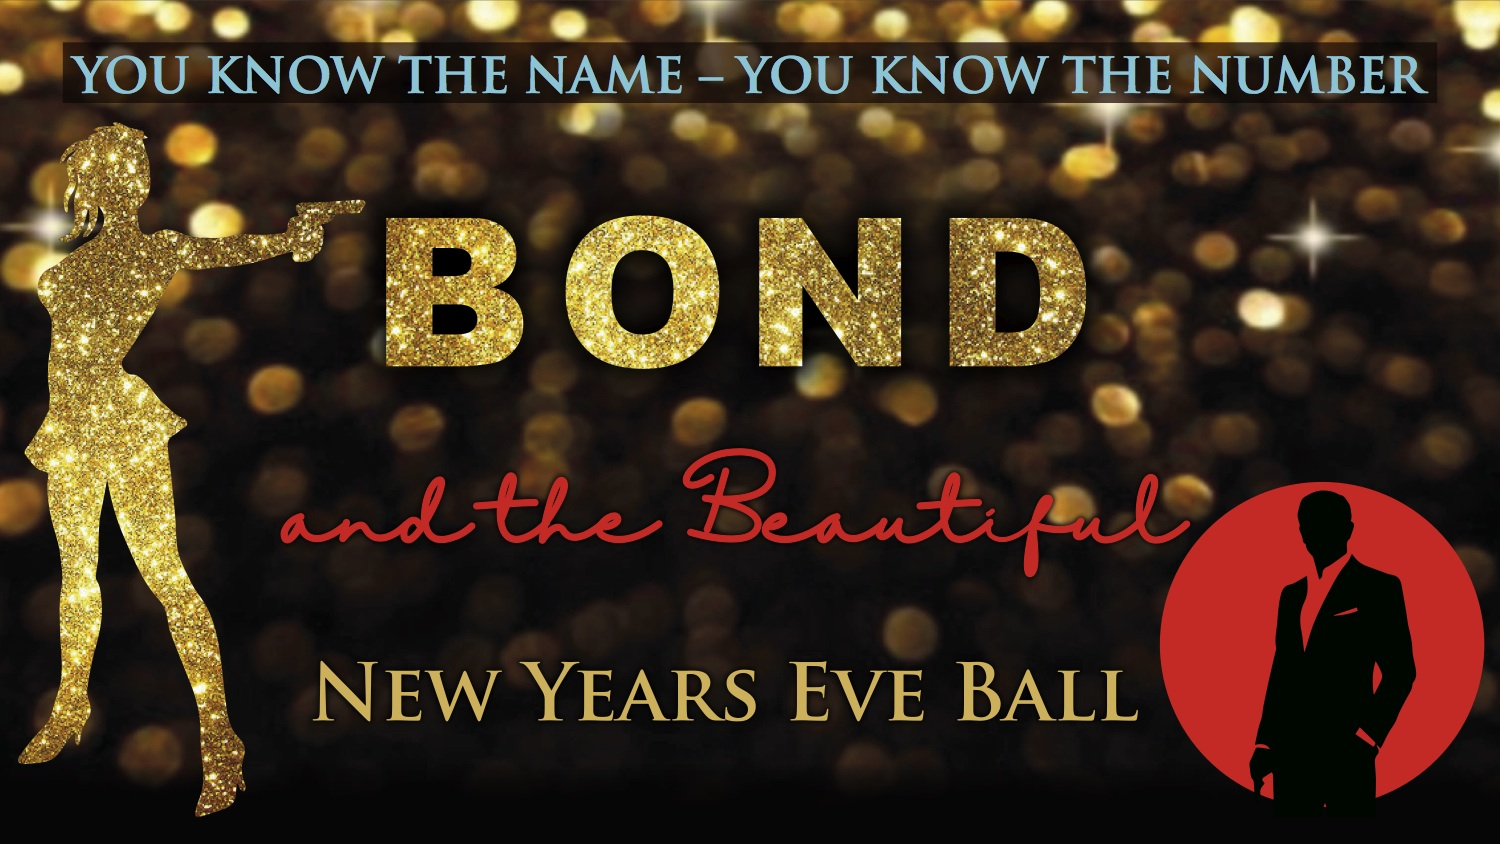 Tamarind's Bond and the Beautiful Ball